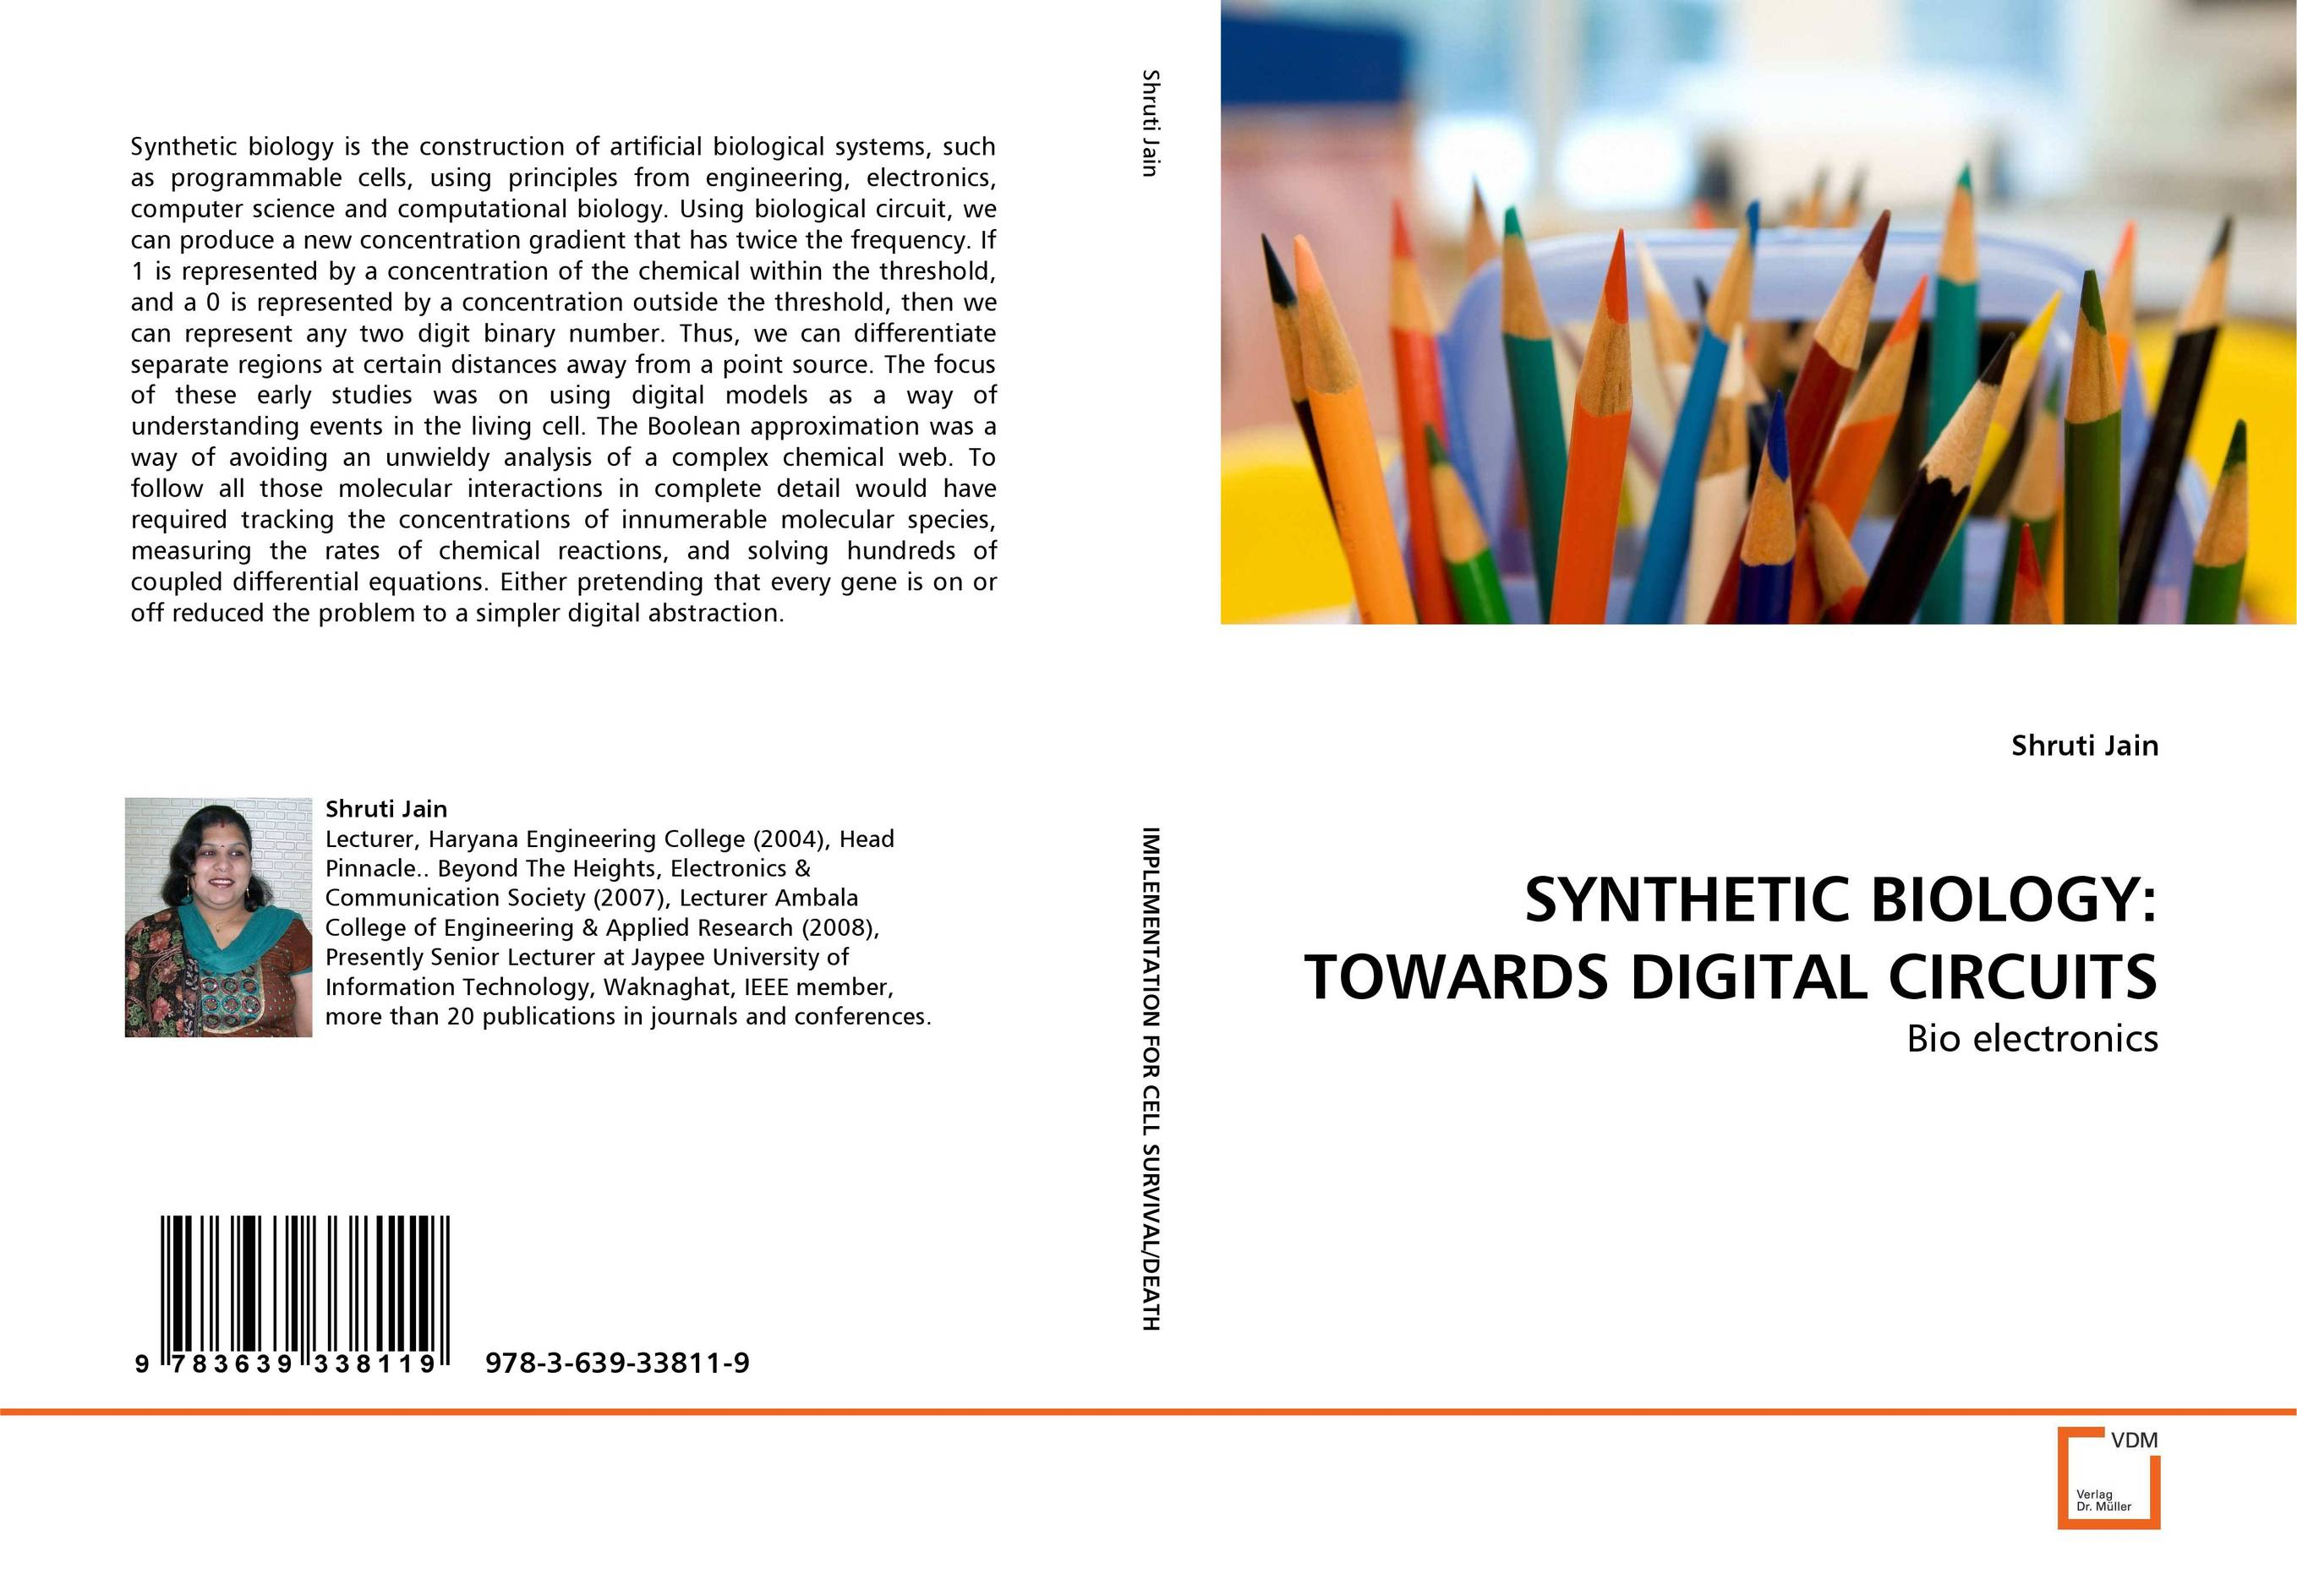 SYNTHETIC BIOLOGY: TOWARDS DIGITAL CIRCUITS